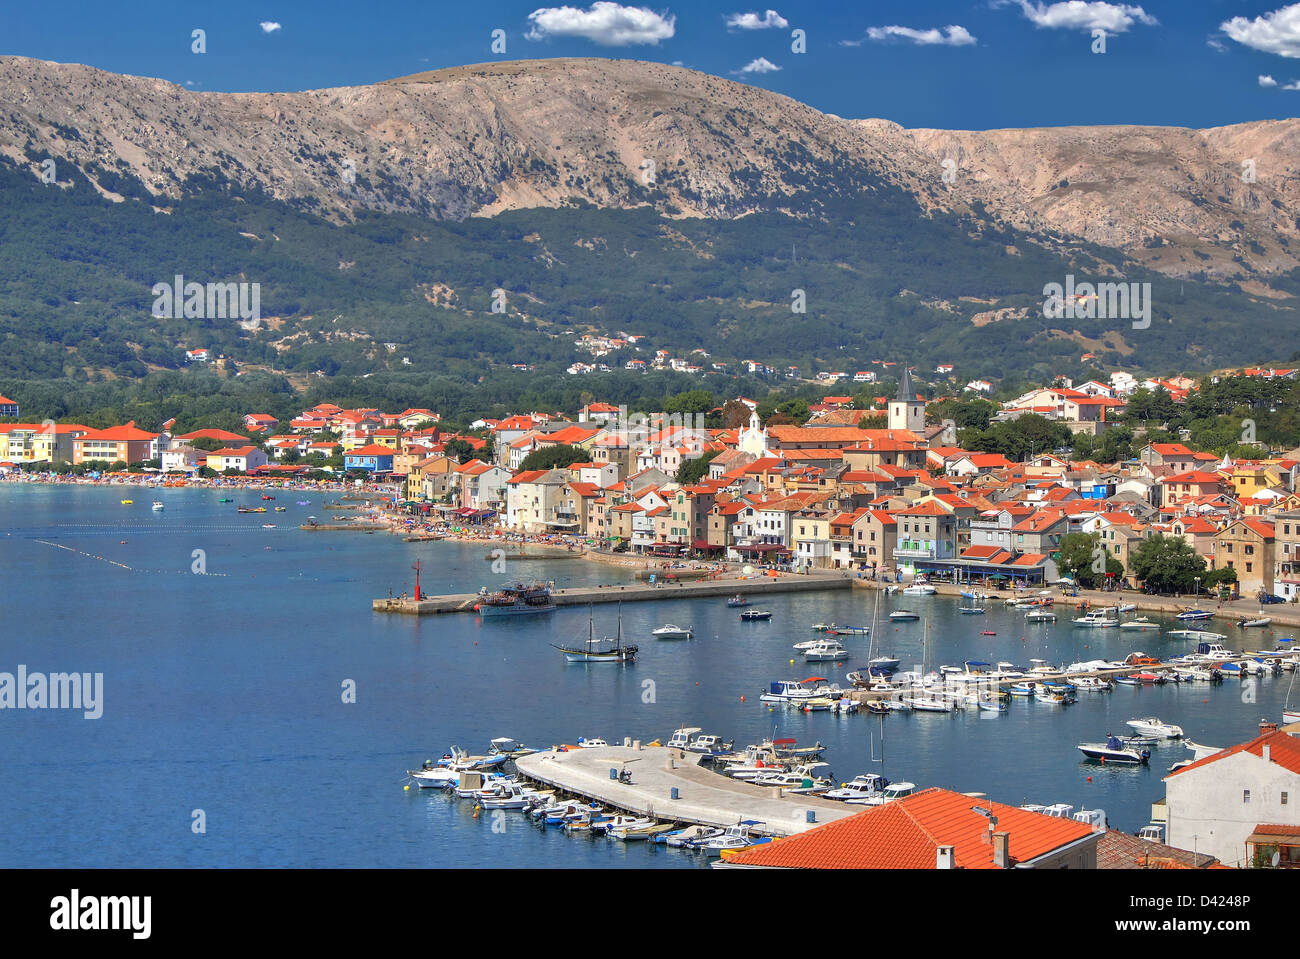 Town of Baska adriatic waterfront, Krk island, Croatia - Stock Image